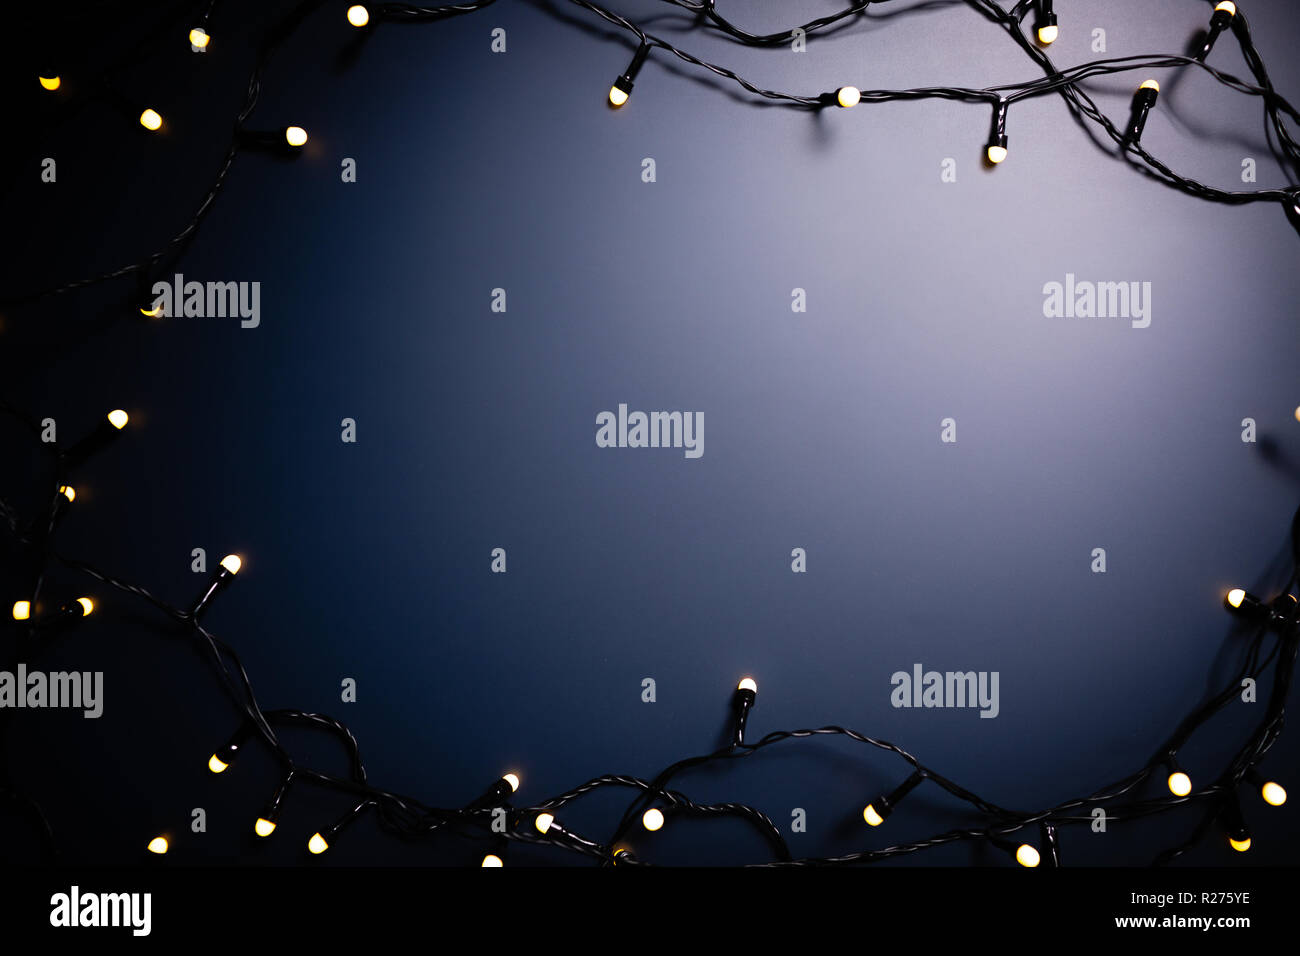 Blue background surrounded by decorative lights. - Stock Image